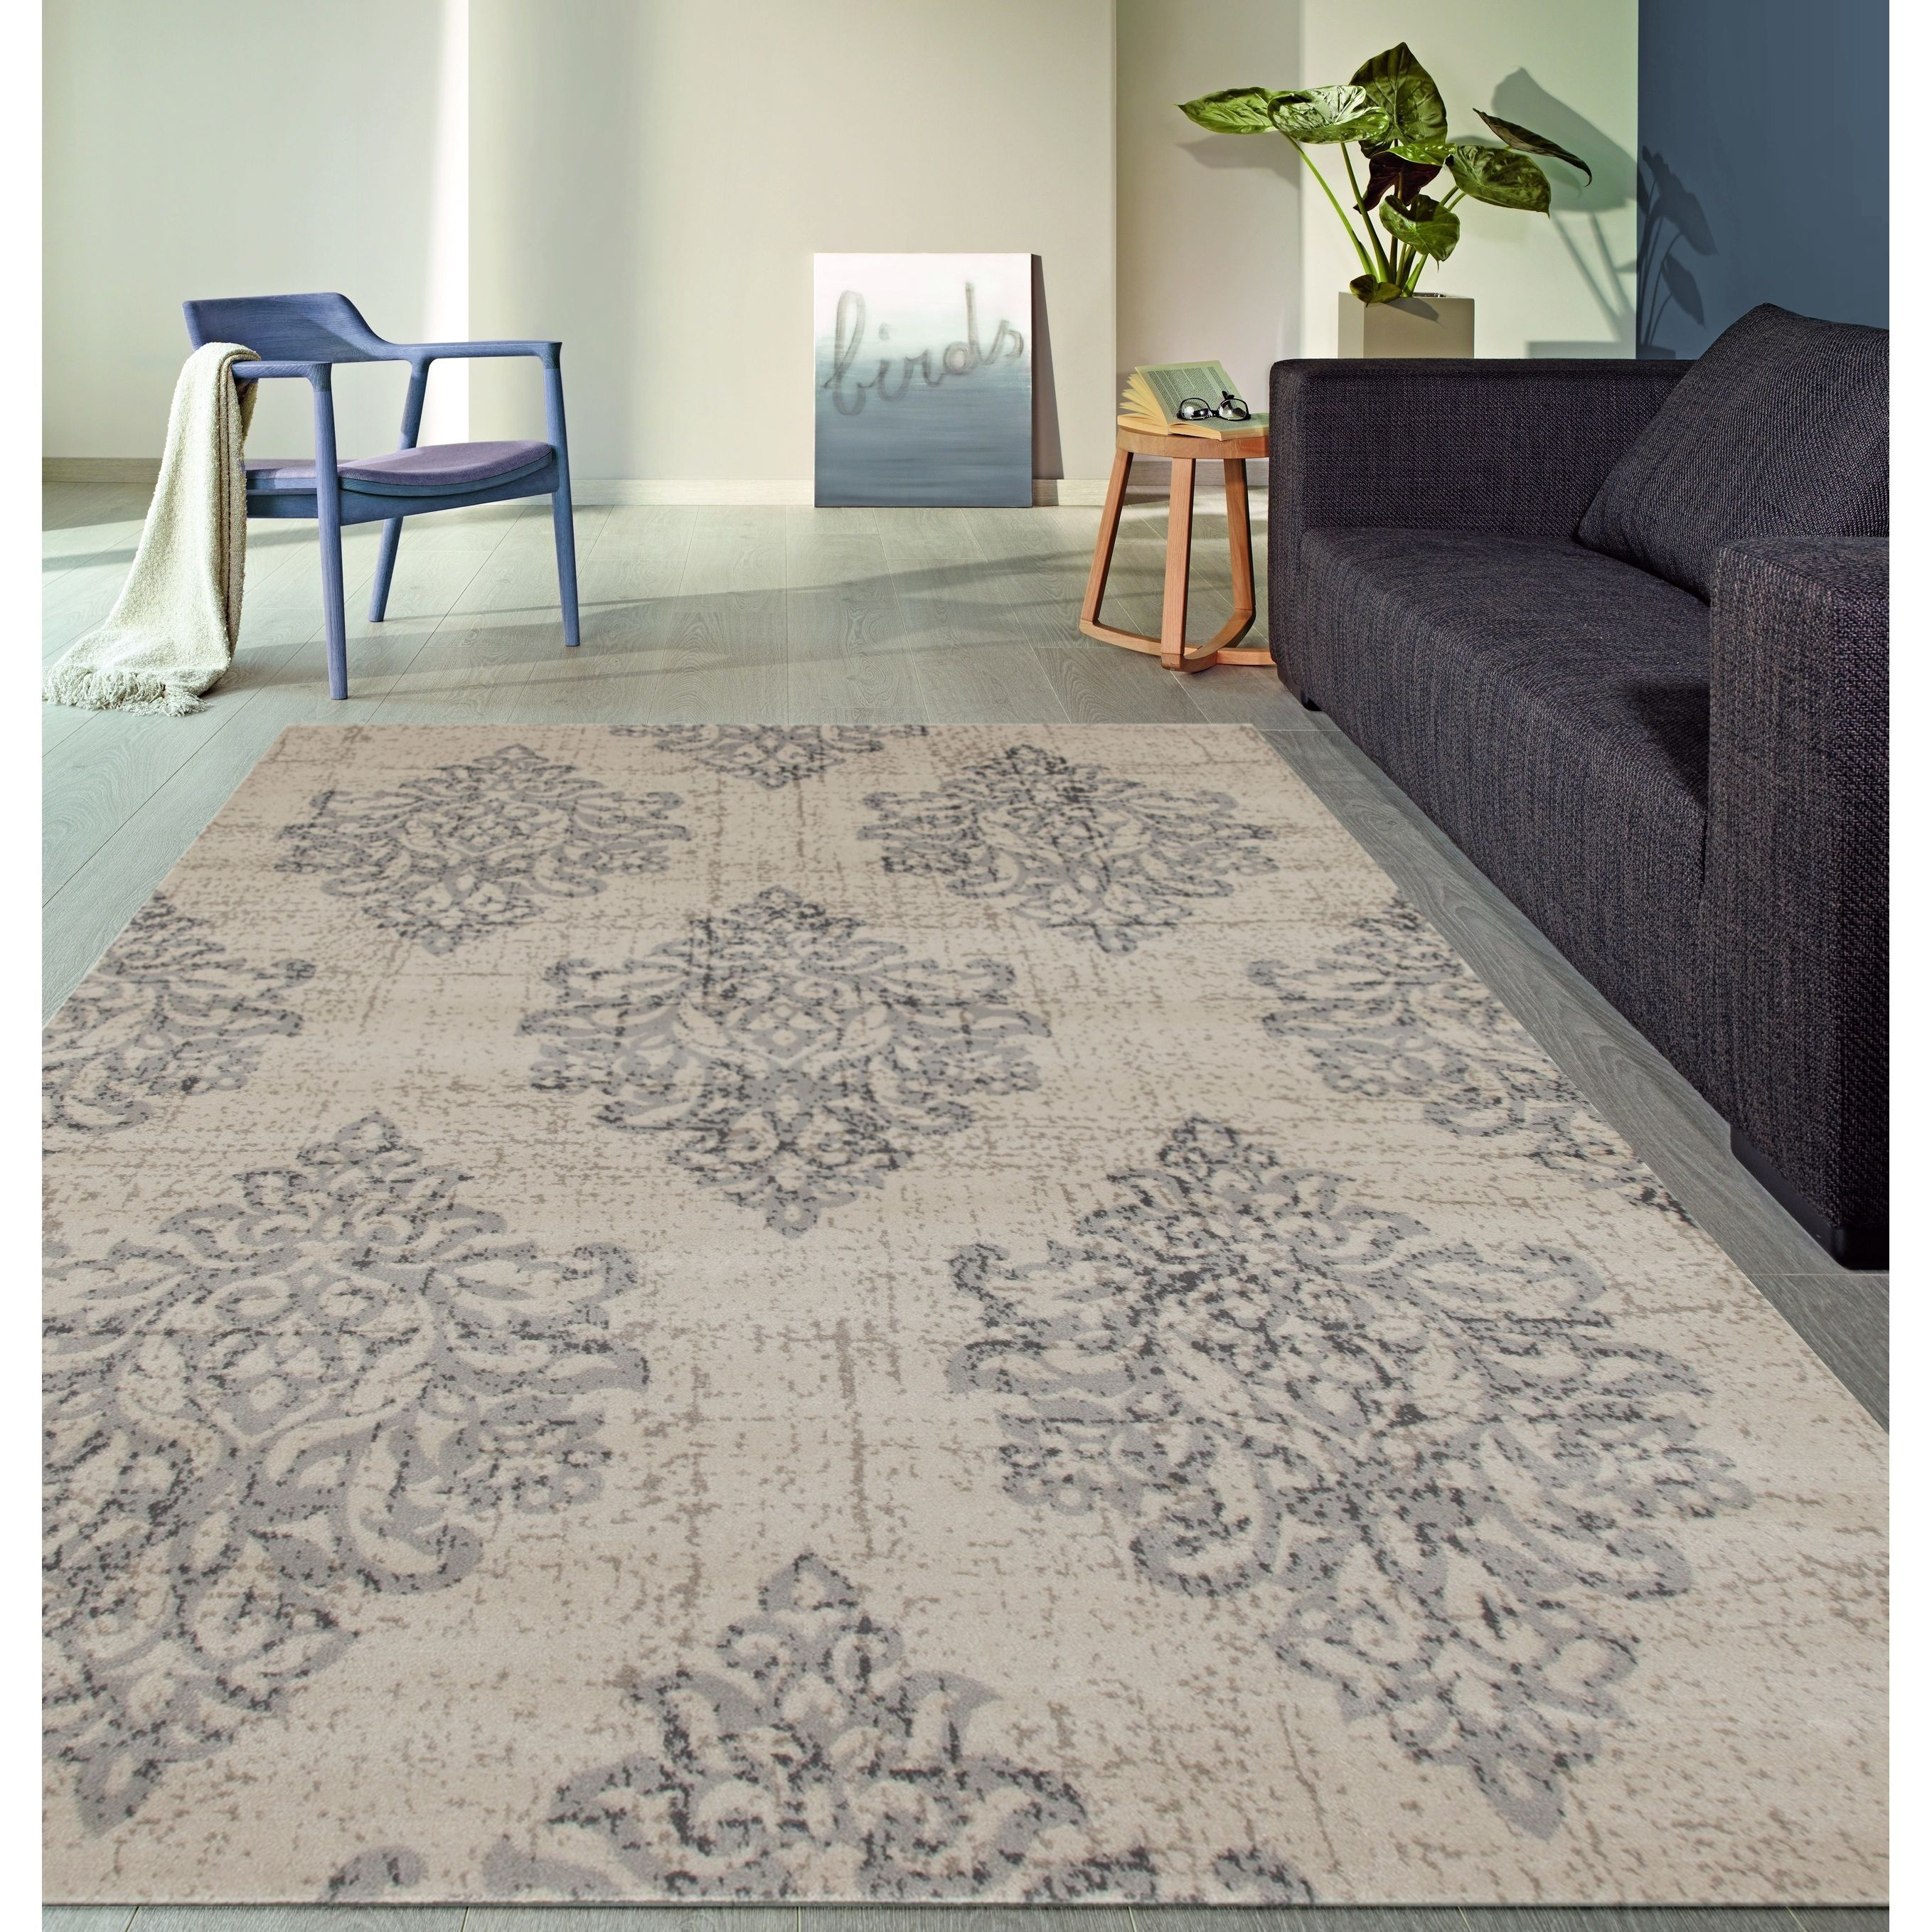 This Beautiful Rug Is Unique Stylish And Ready To Accent